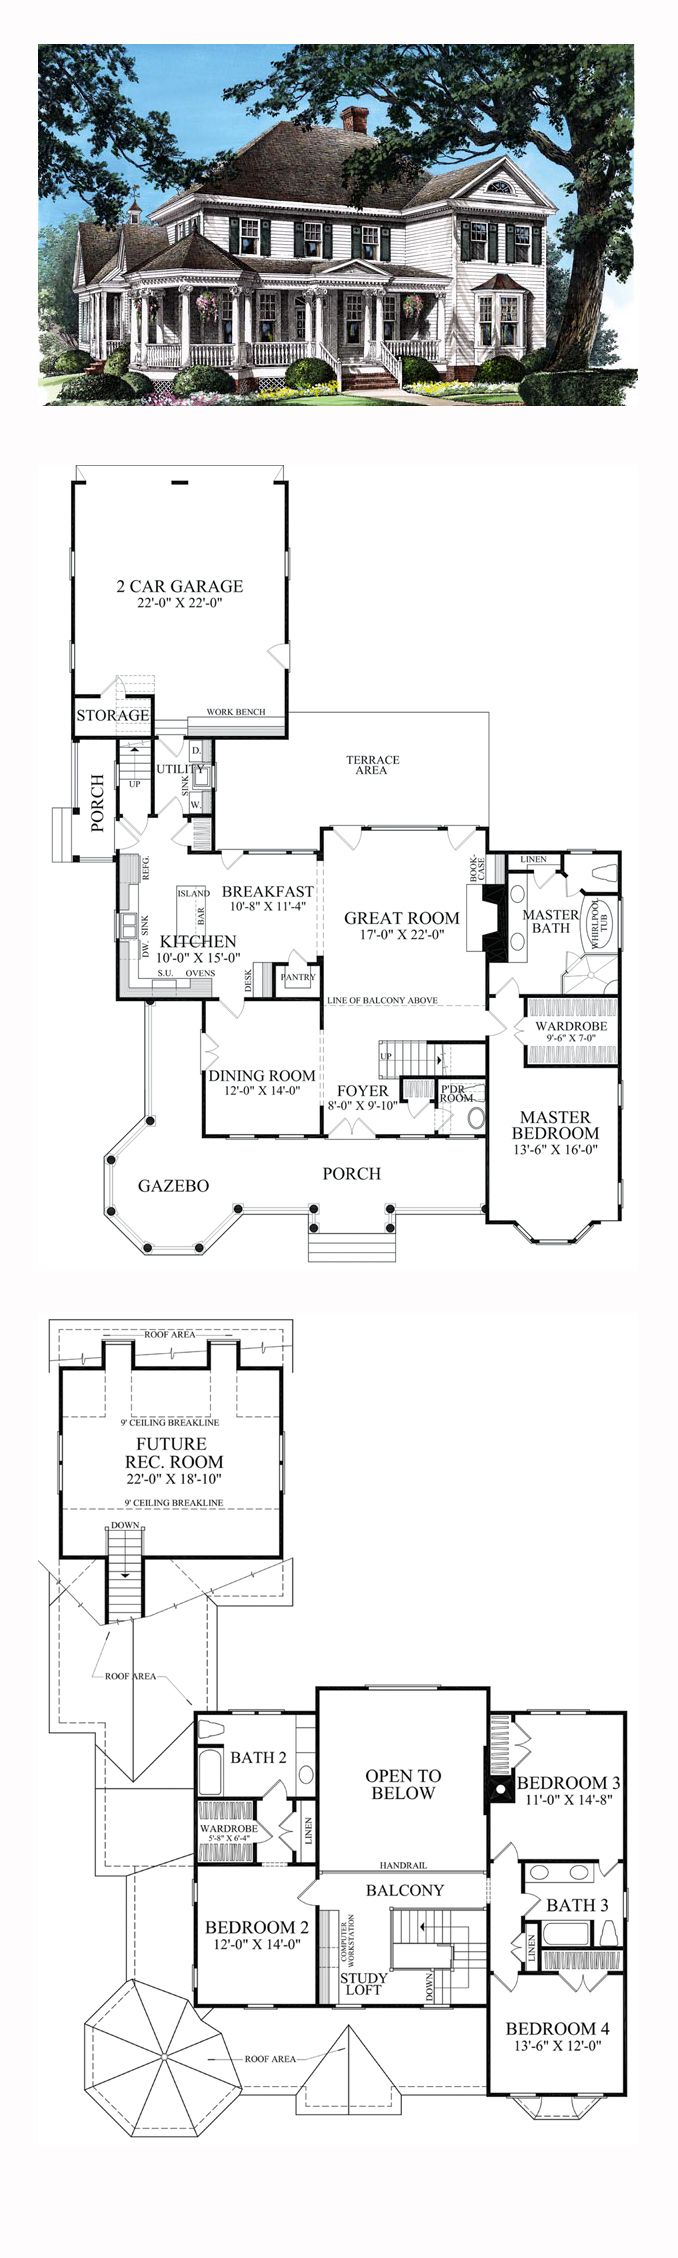 best 25 4 bedroom house plans ideas on pinterest house plans best 25 4 bedroom house plans ideas on pinterest house plans house blueprints and house layout plans